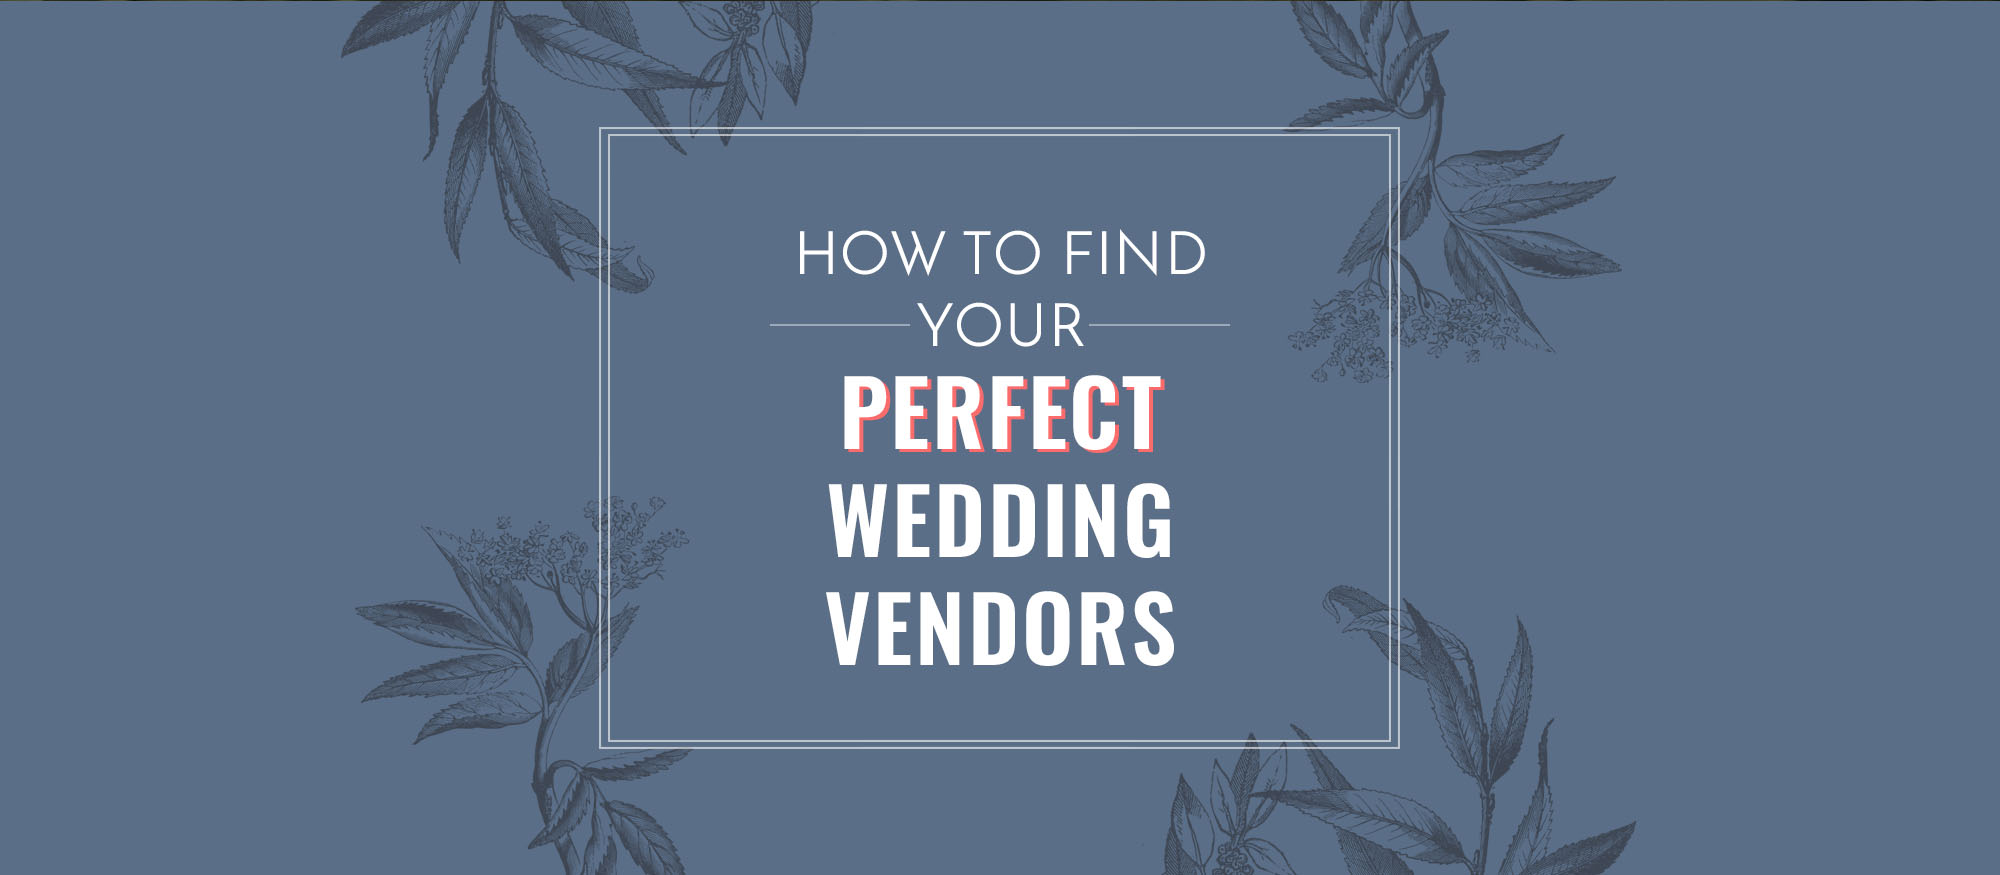 How to find the perfect wedding vendors